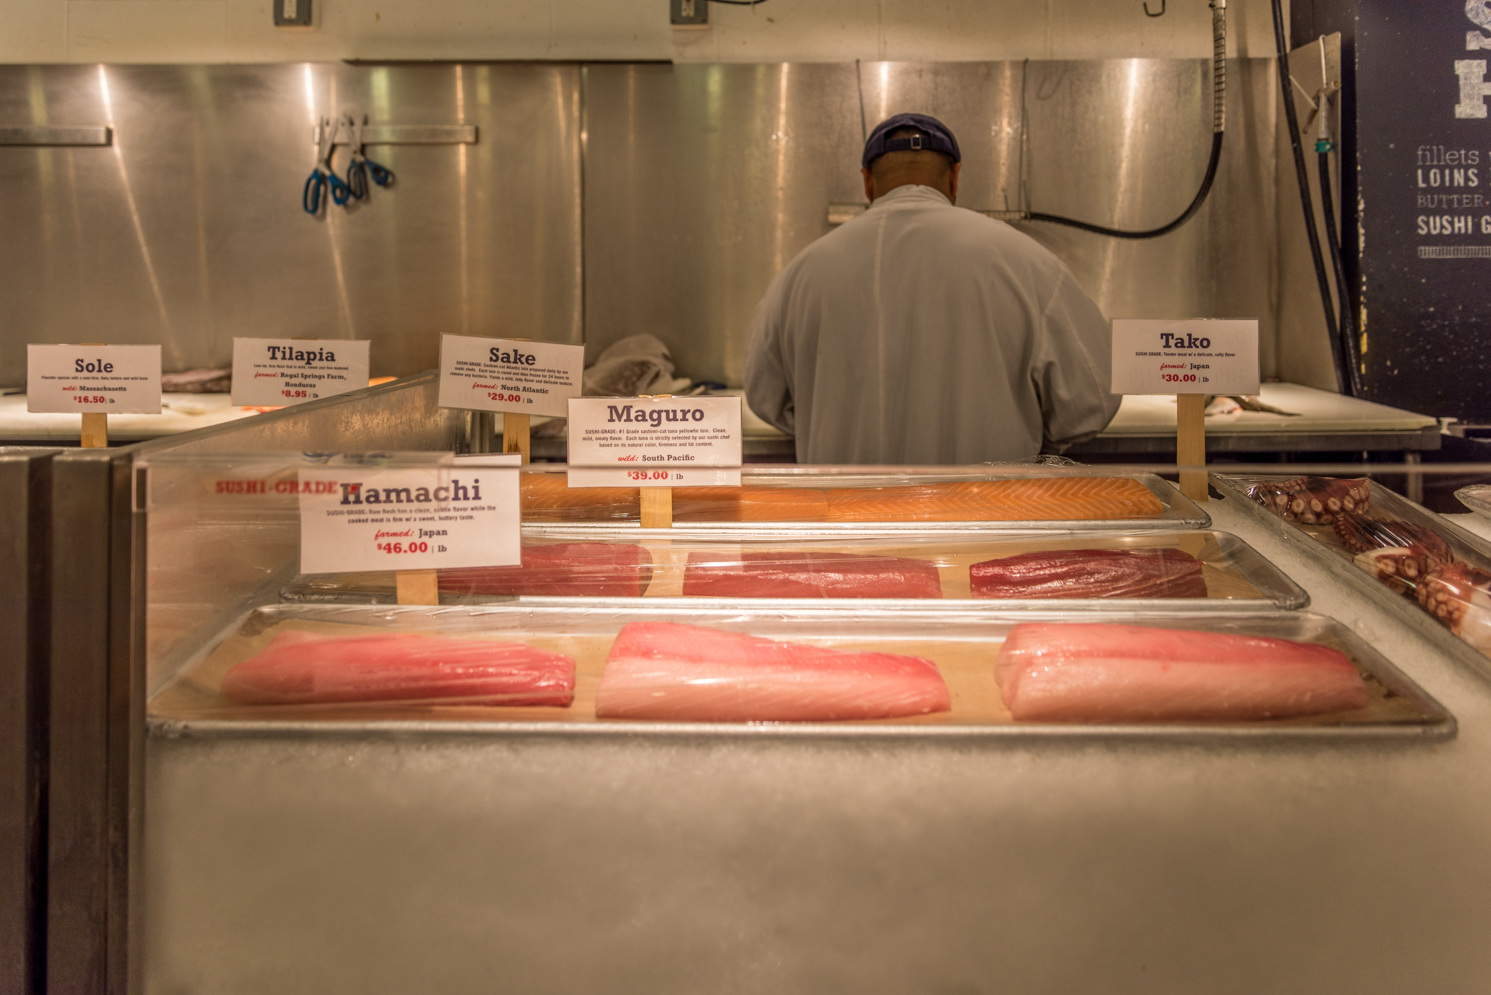 ROCK MAMA NYC LIFESTYLE BLOG - SASHIMI QUALITY FISH IN NYC - LOBSTER PLACE   AT CHELSEA MARKET